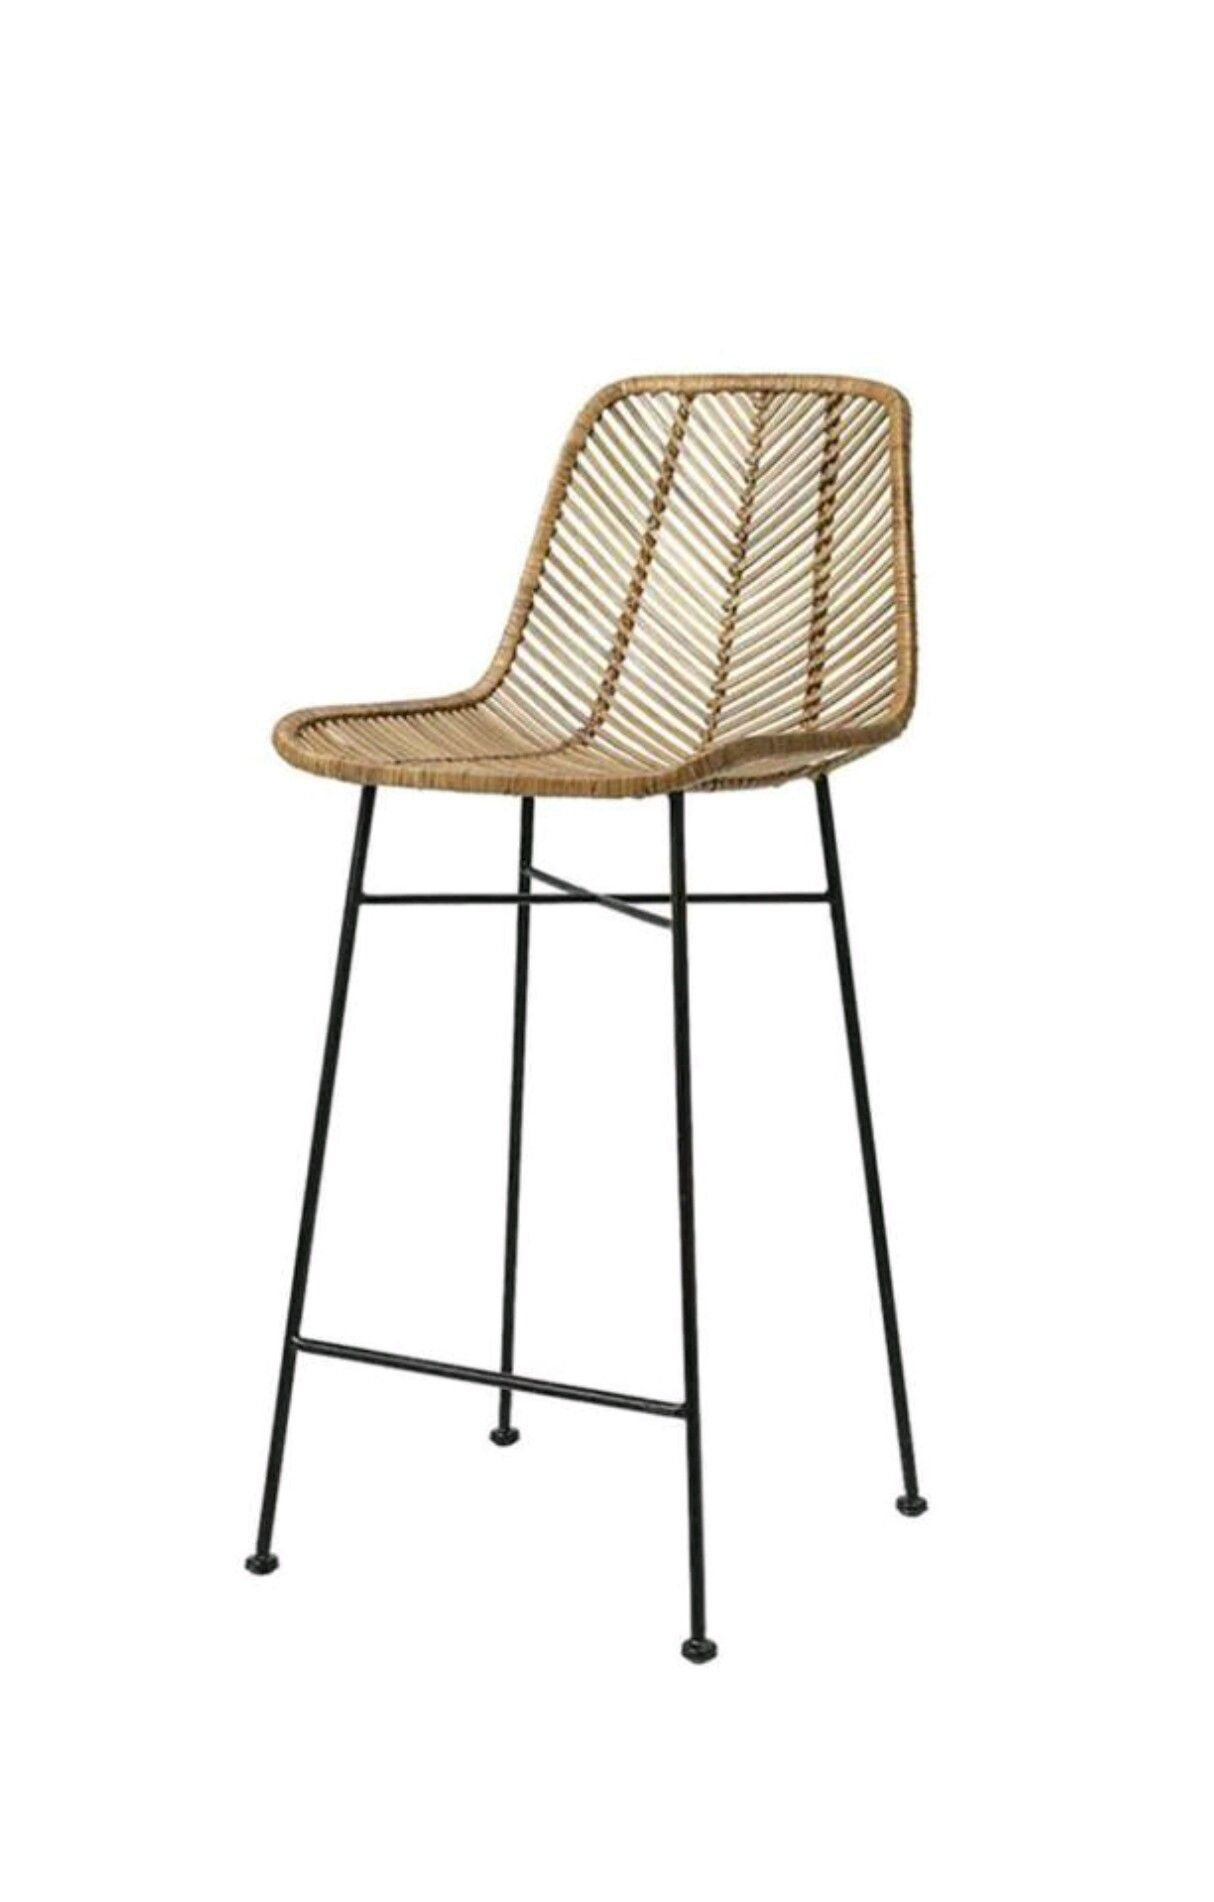 Pleasing Hk Living Bar Kruk Chair In 2019 Rattan Bar Stools Bar Gmtry Best Dining Table And Chair Ideas Images Gmtryco